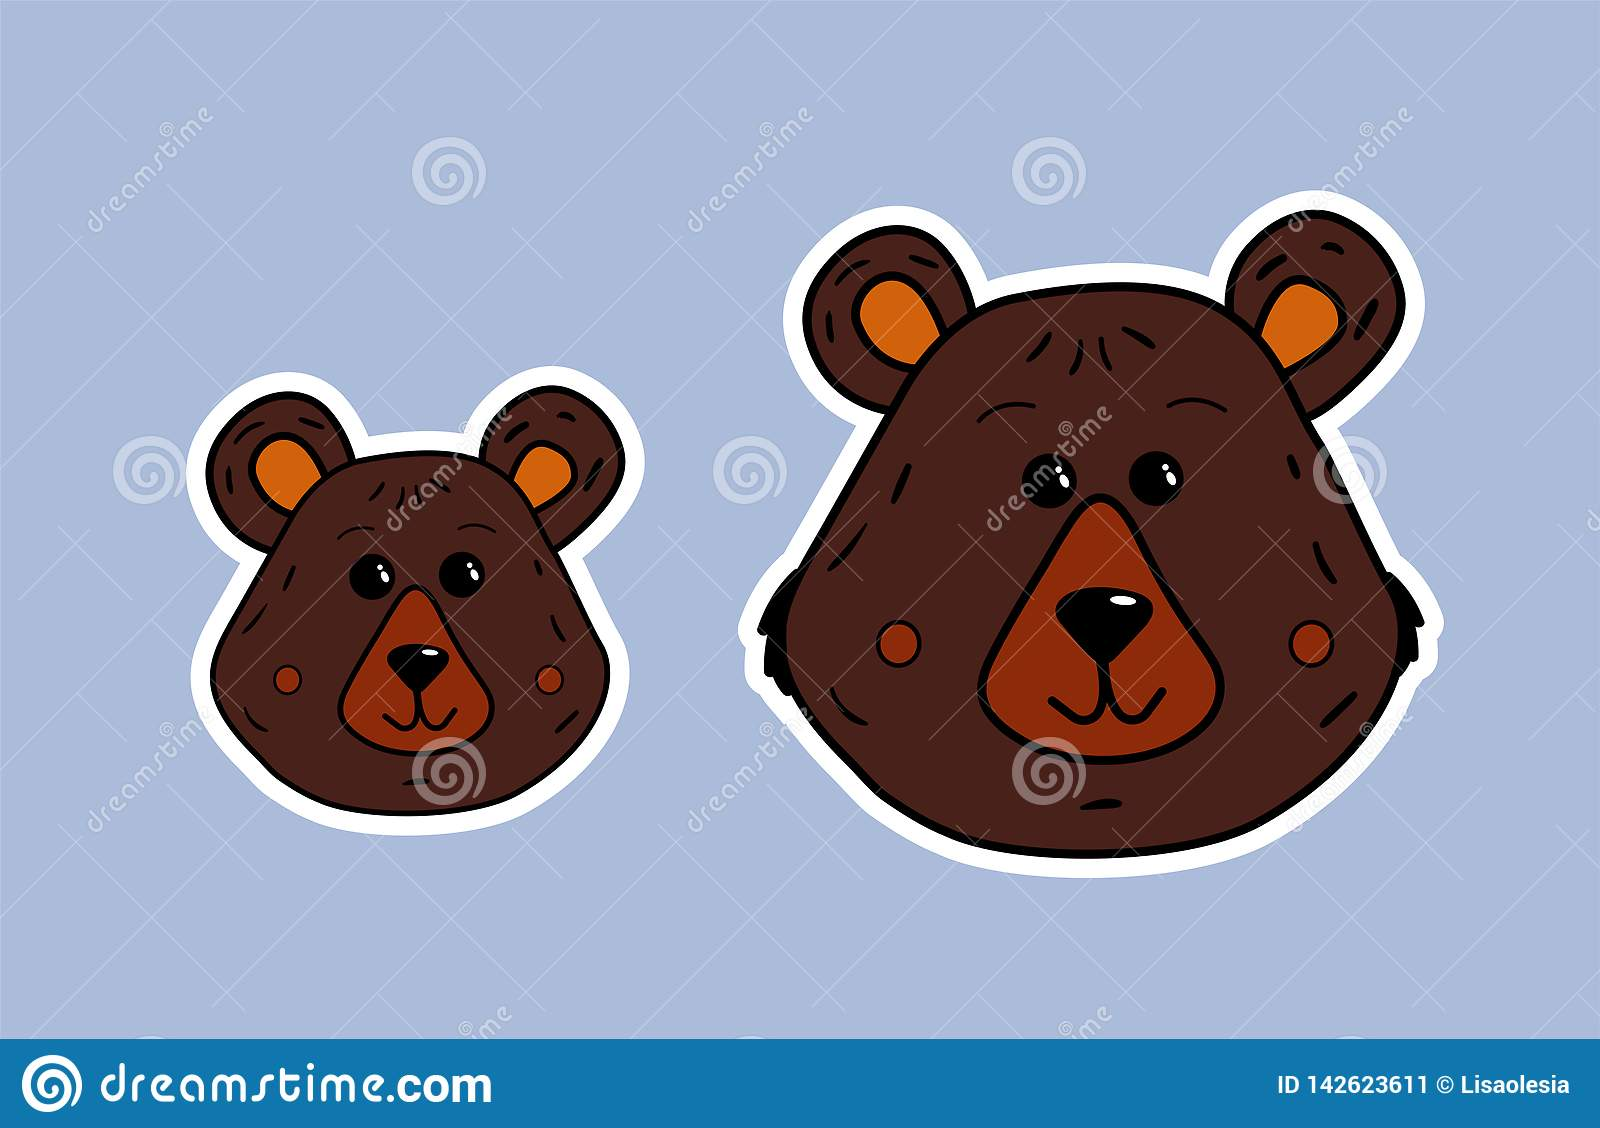 Bear Family Mama Bear And Little Bear Vector Cute Face In White Contour Cartoon Illustration Of The Muzzle Of The Animal Funny Stock Vector Illustration Of Cute Background 142623611